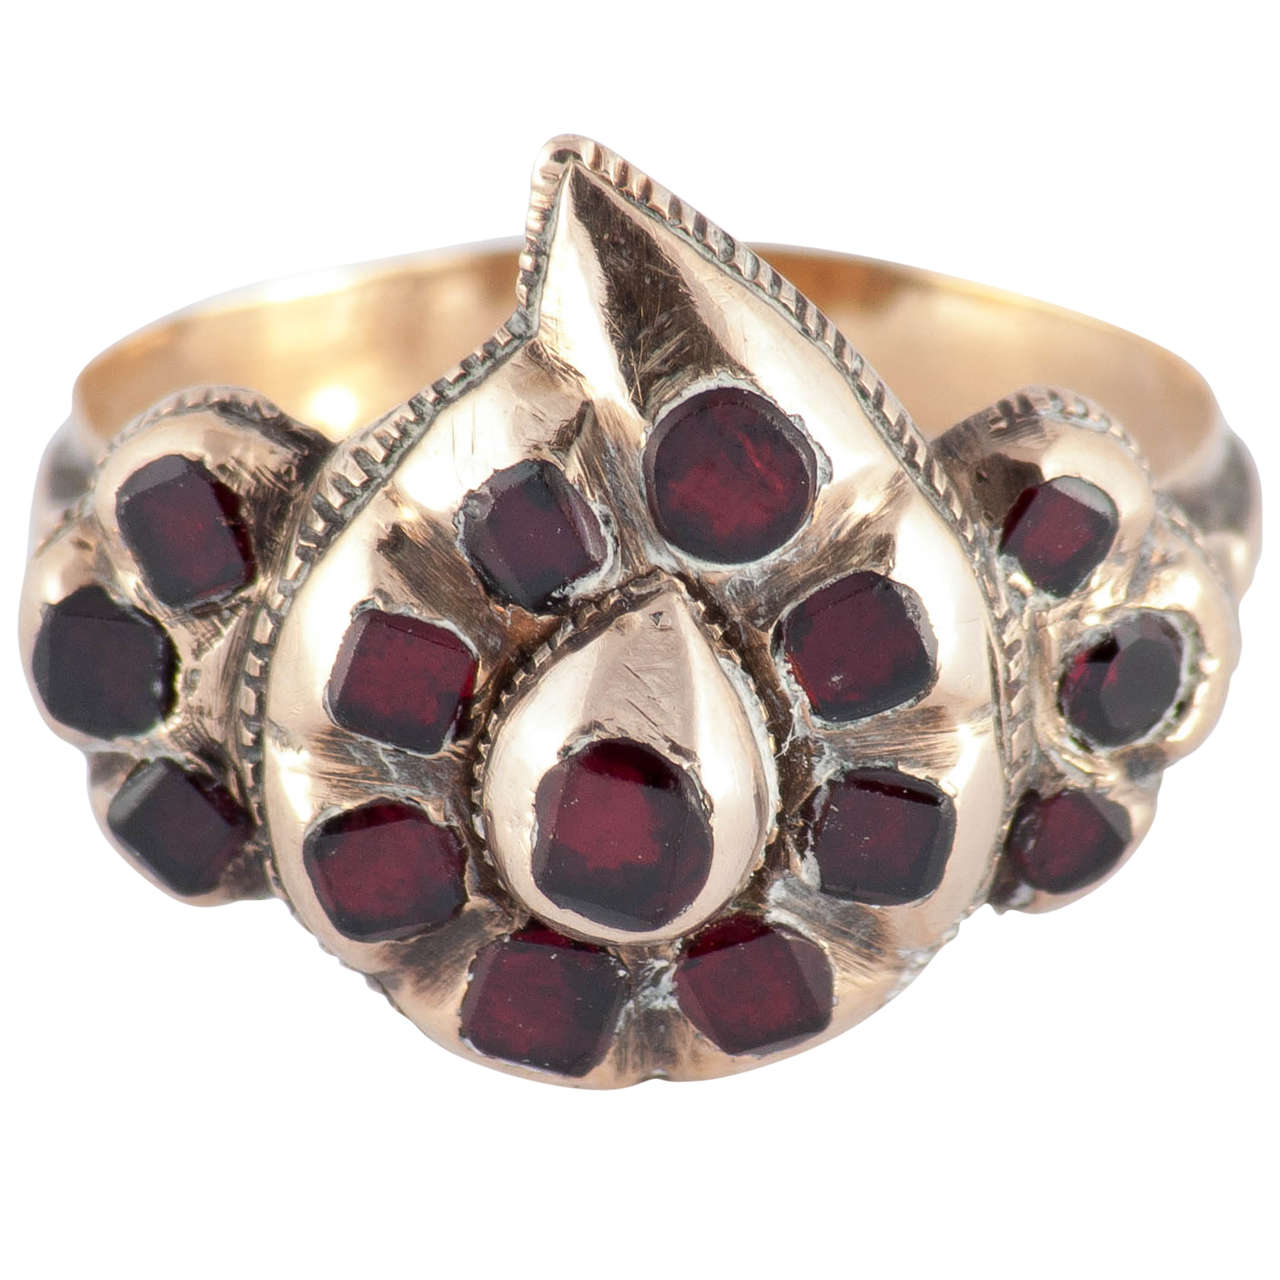 Antique Spanish Garnet Gold Heart Ring For Sale at 1stdibs